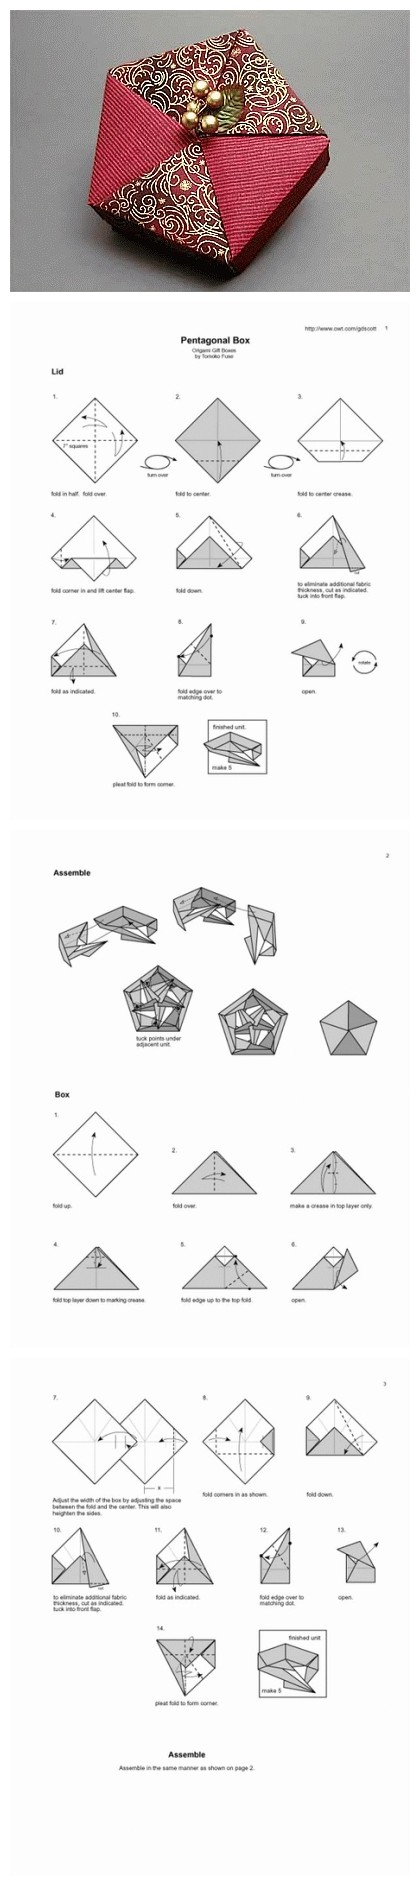 medium resolution of origami pentagonal box with instructions